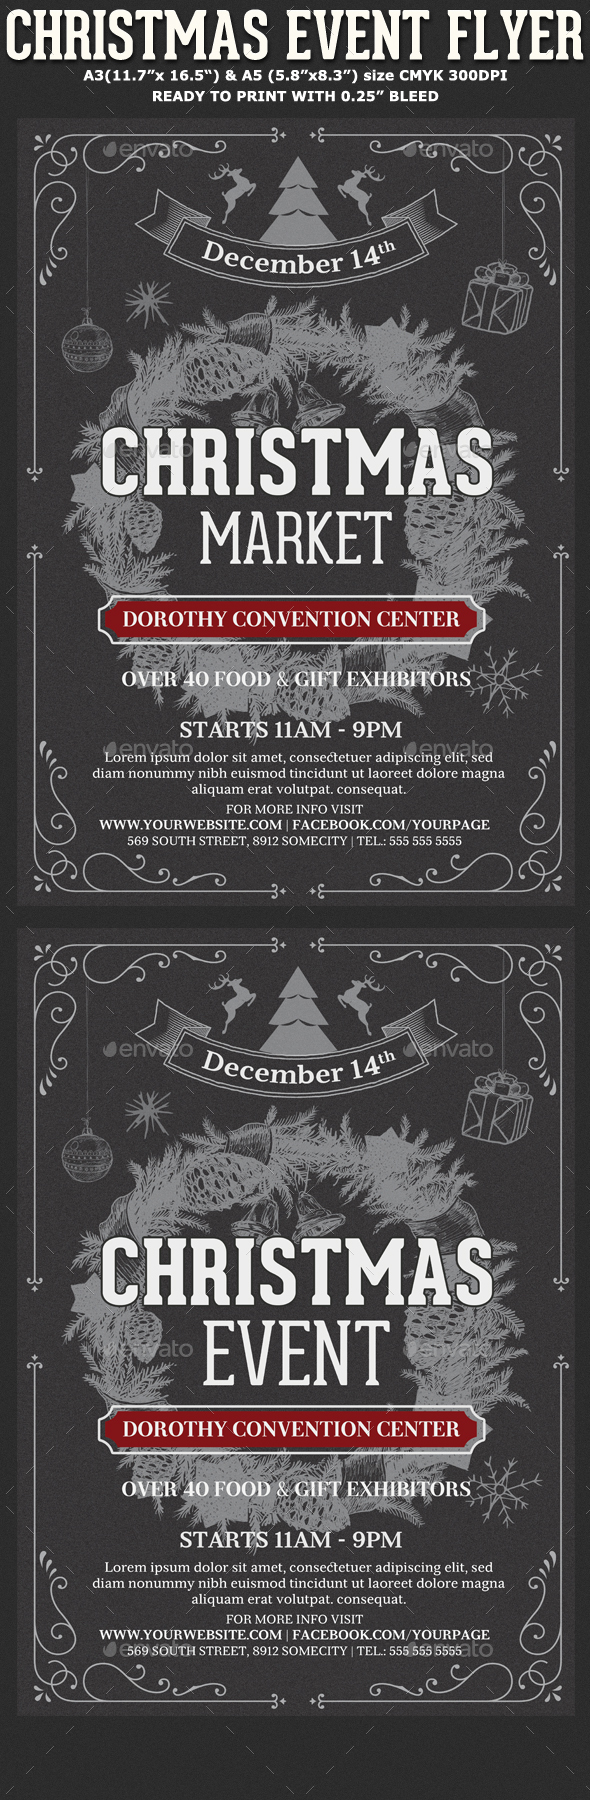 Christmas Event Flyer Template By Hotpin Graphicriver